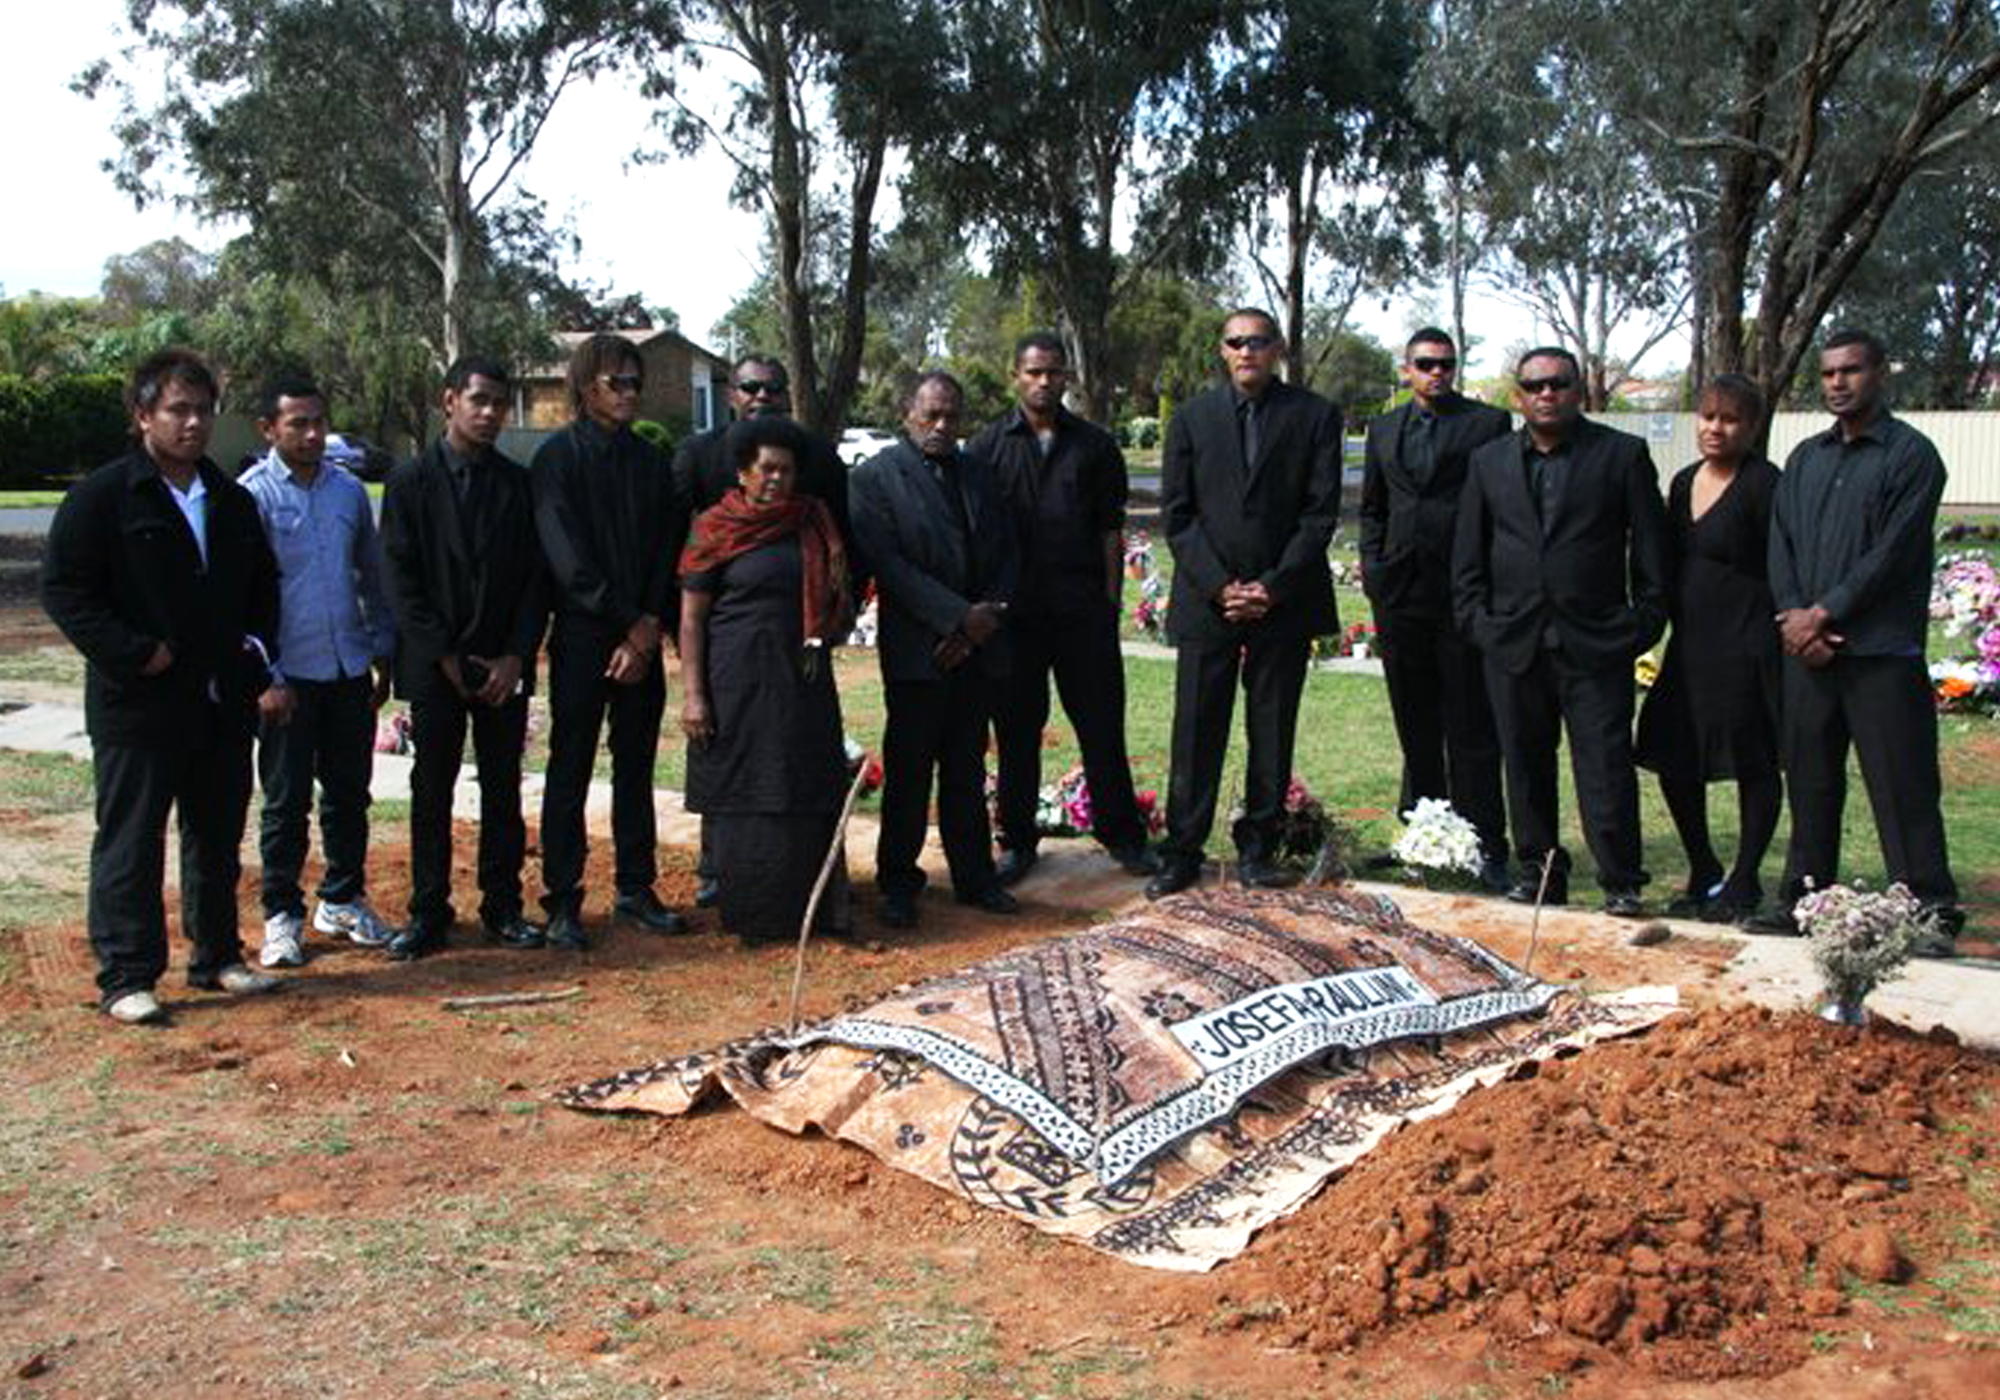 Mourners dressed in black are gathered at the site of Josefa Rauluni's grave.